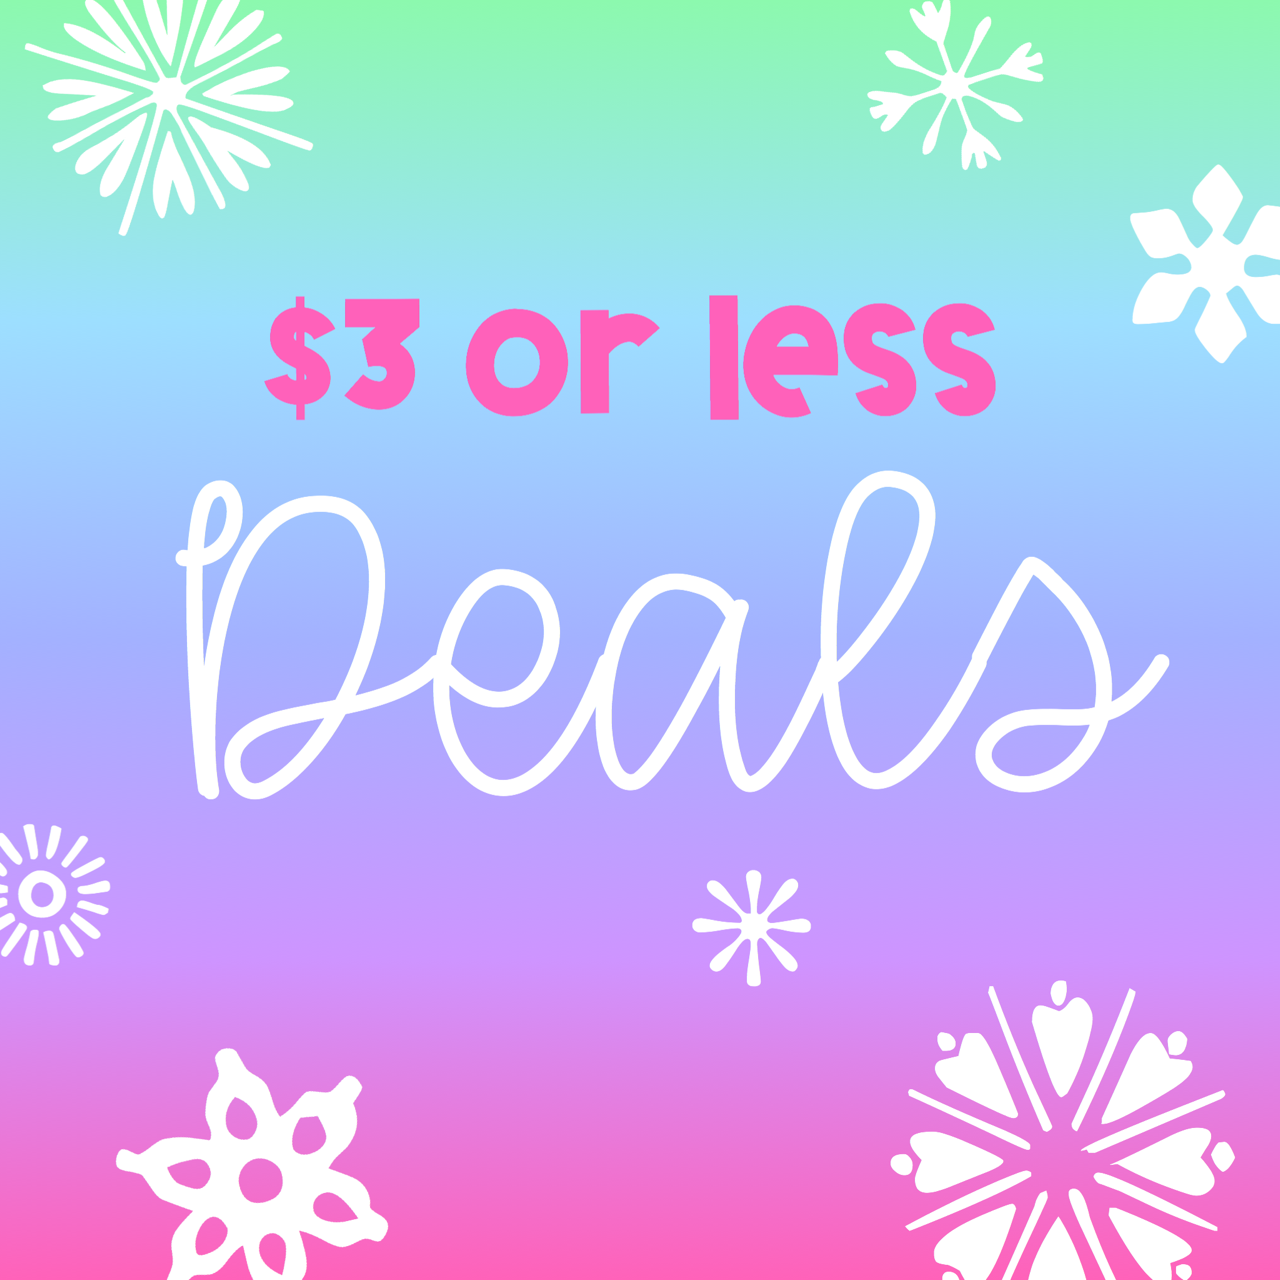 Lisa Goodell 3 Or Less Christmas Themed Deals That Won